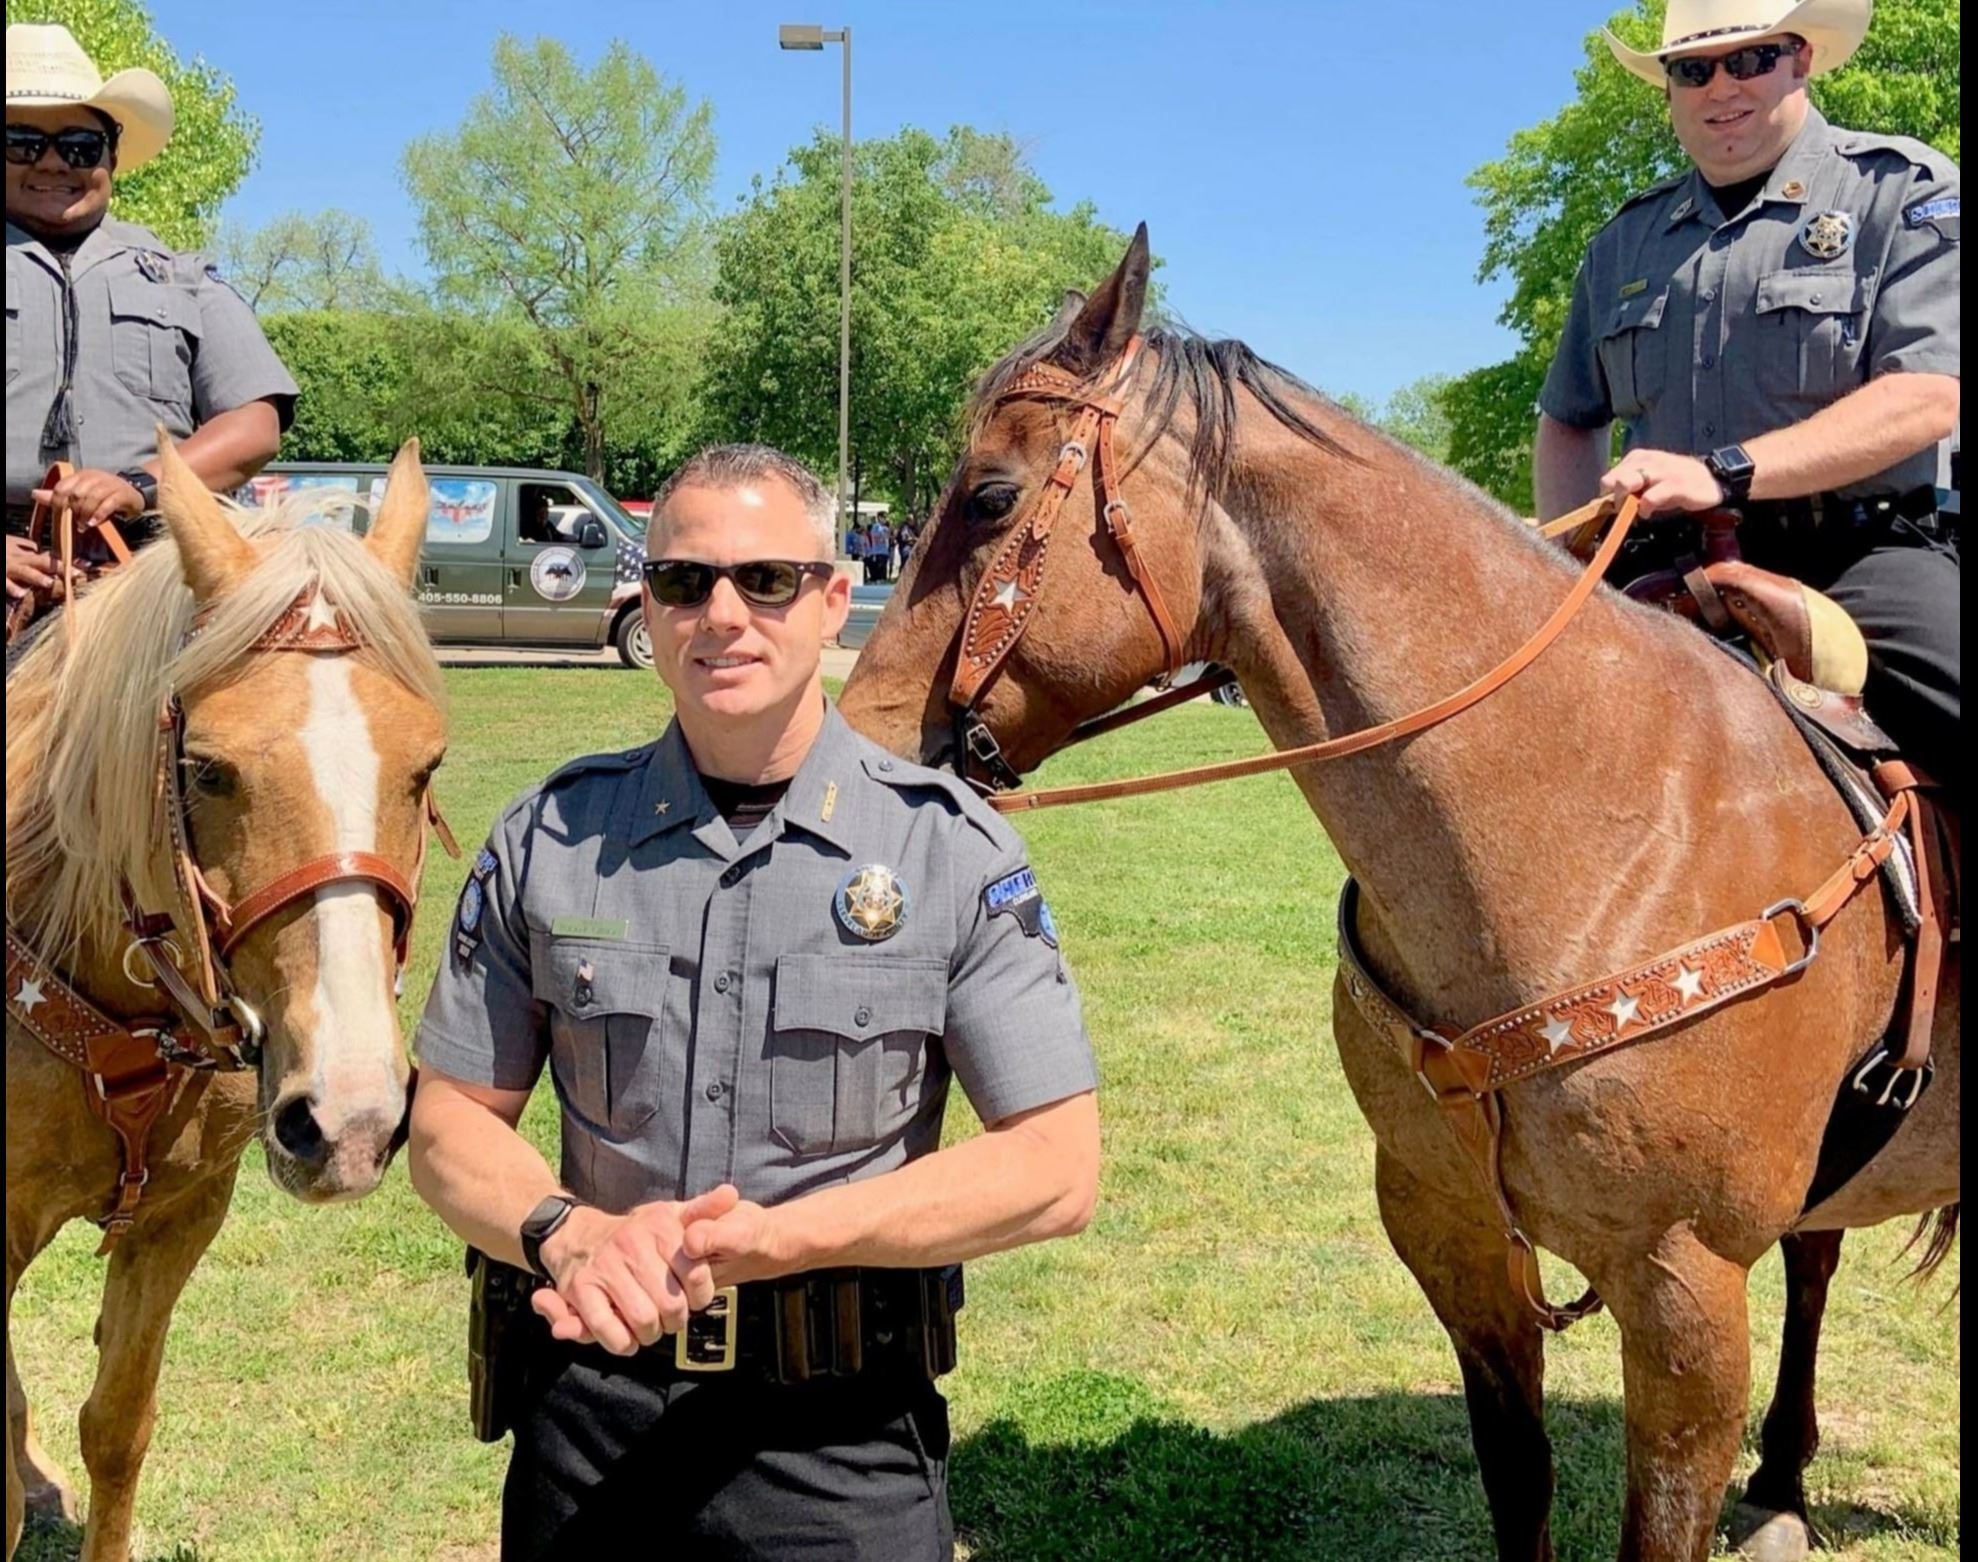 Sheriff and parade horses